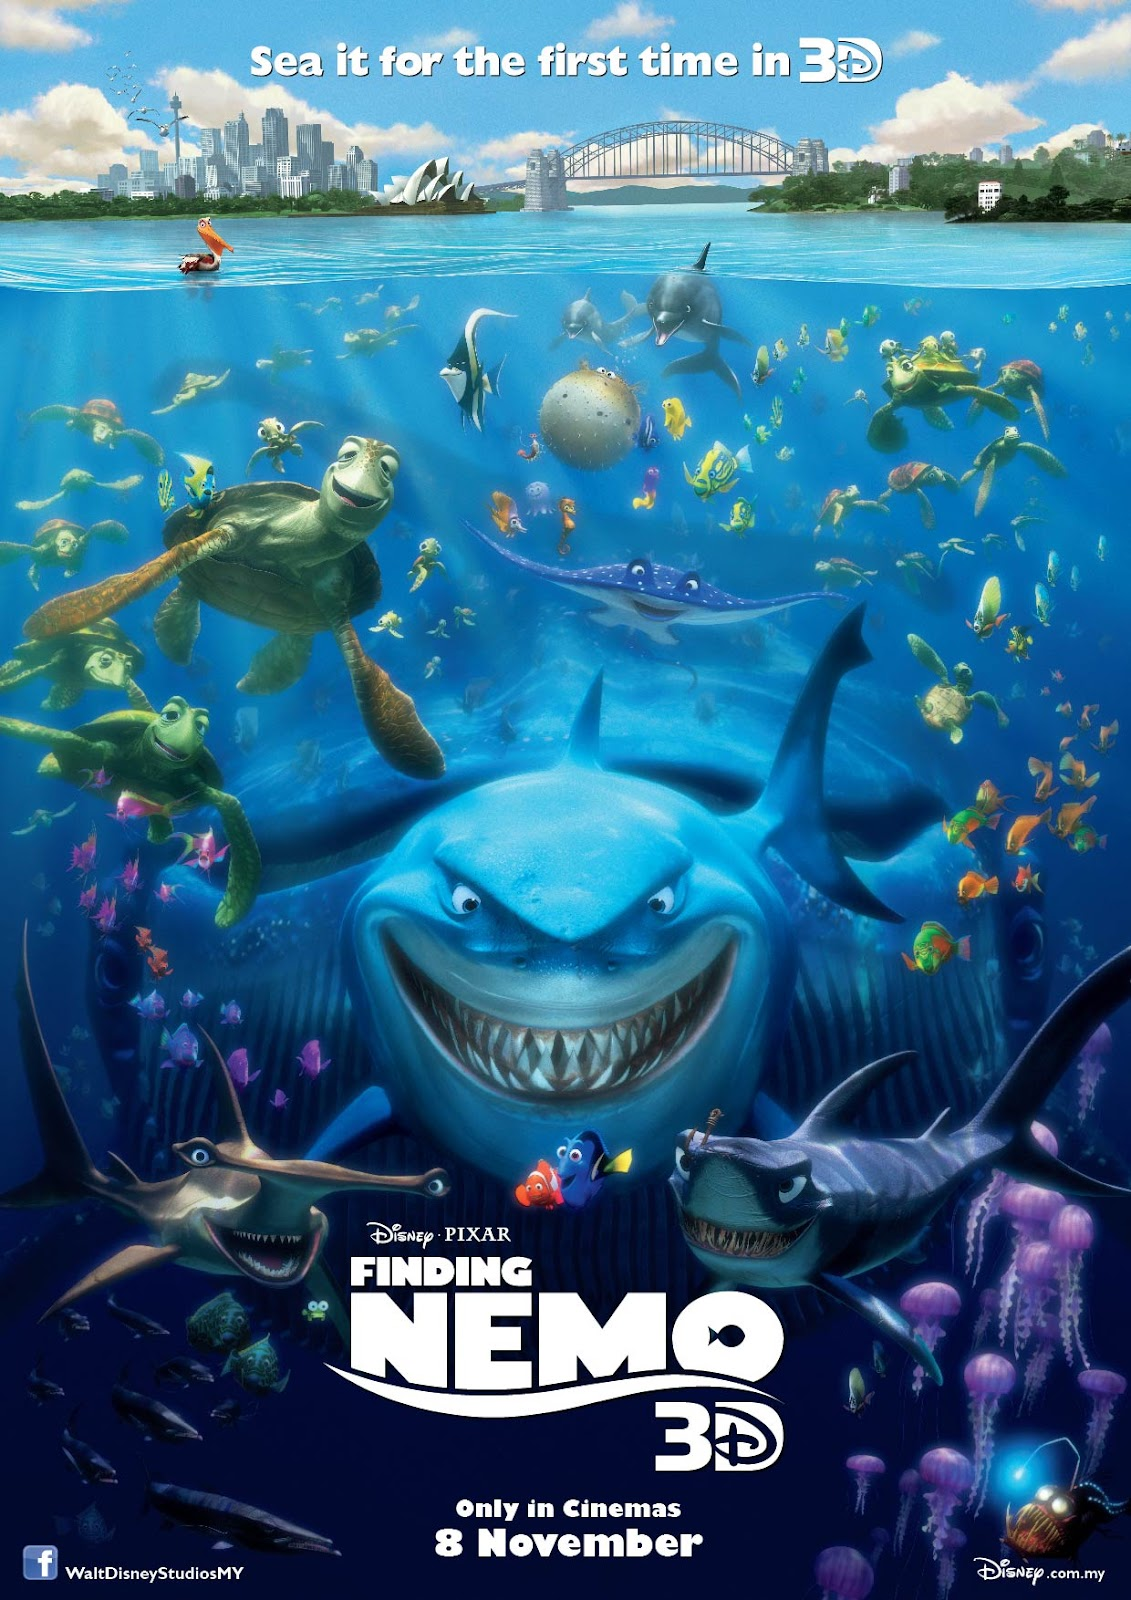 Movie Review: Finding Nemo 3D